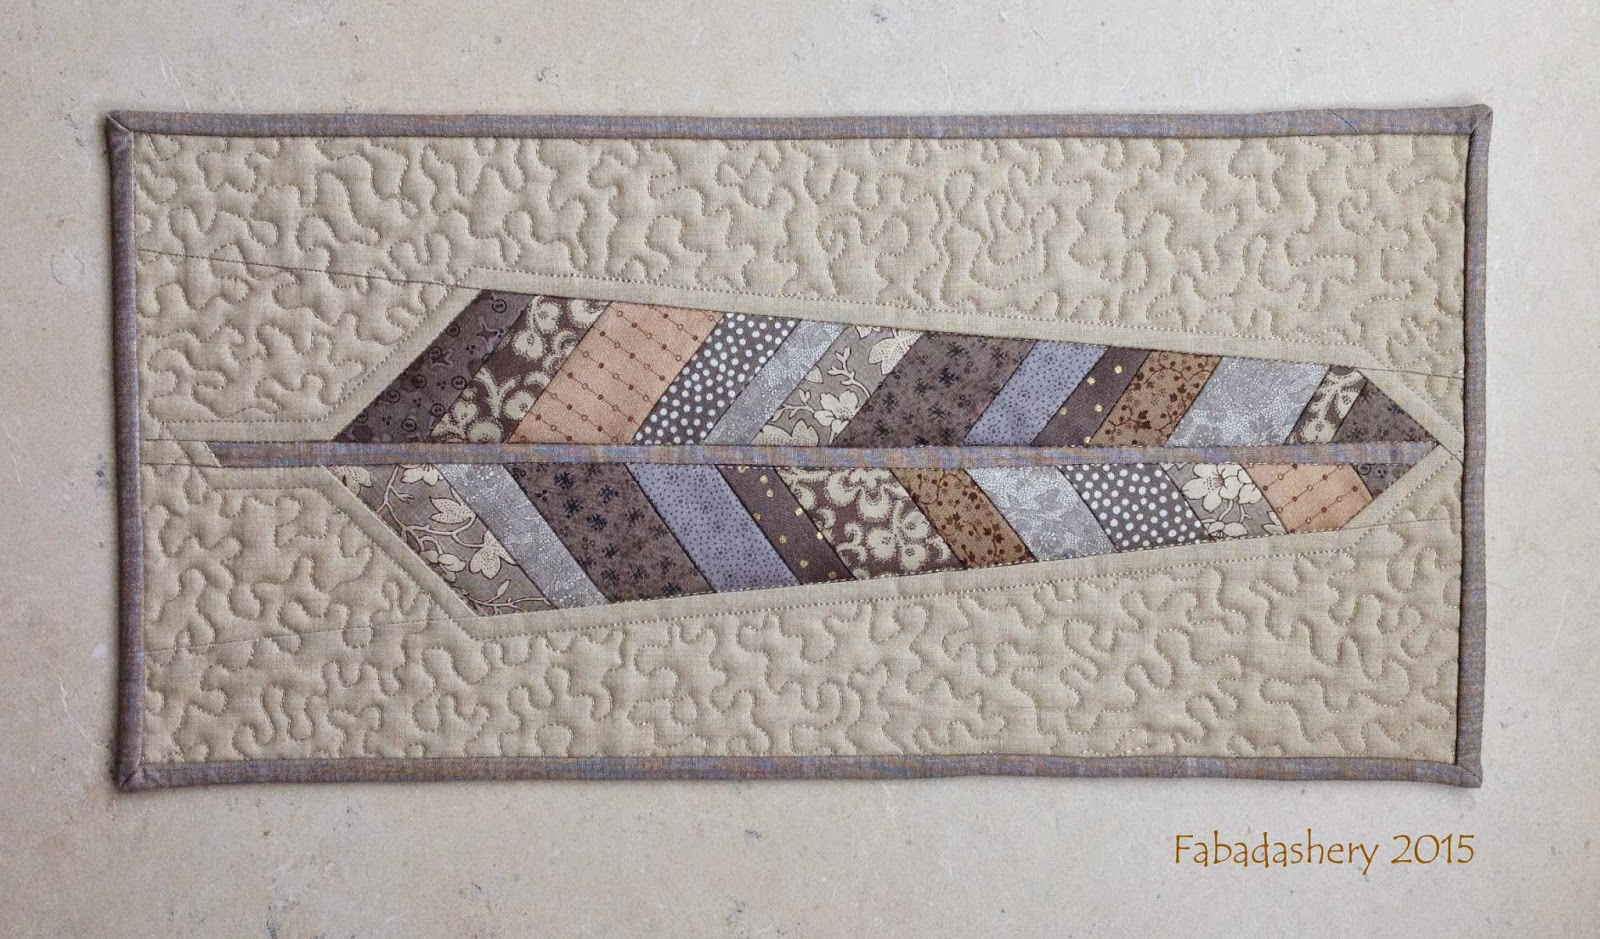 Fabadashery: Equilateral Triangle Quilt 60 degree Triangle : 60 degree triangle quilt - Adamdwight.com